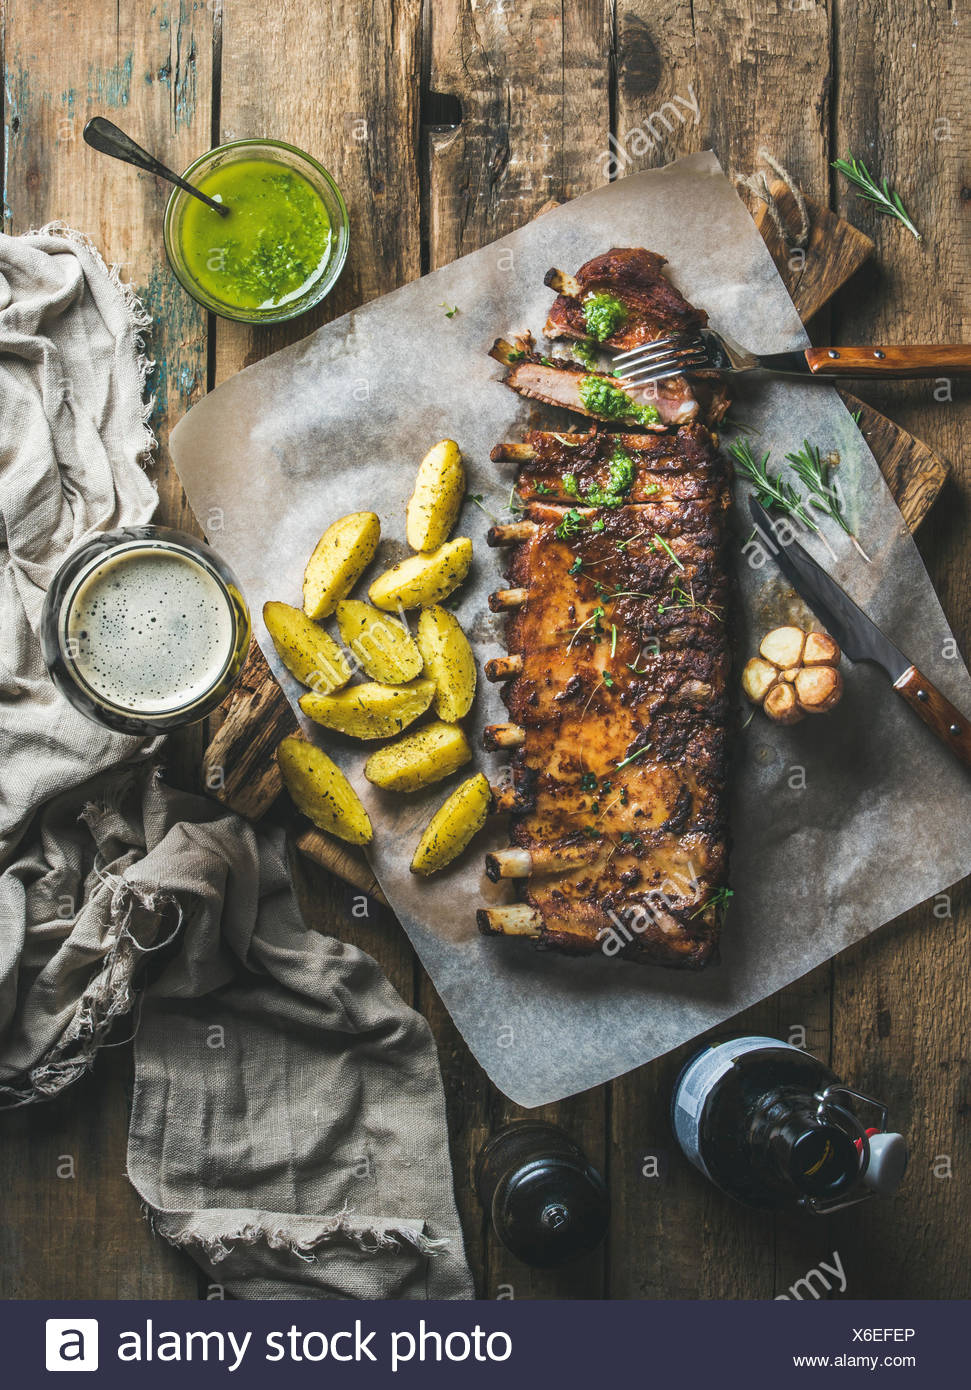 Roasted pork ribs with garlic, rosemary, green herb sauce, fried potato and dark beer on rustic wooden background, top view, ver - Stock Image